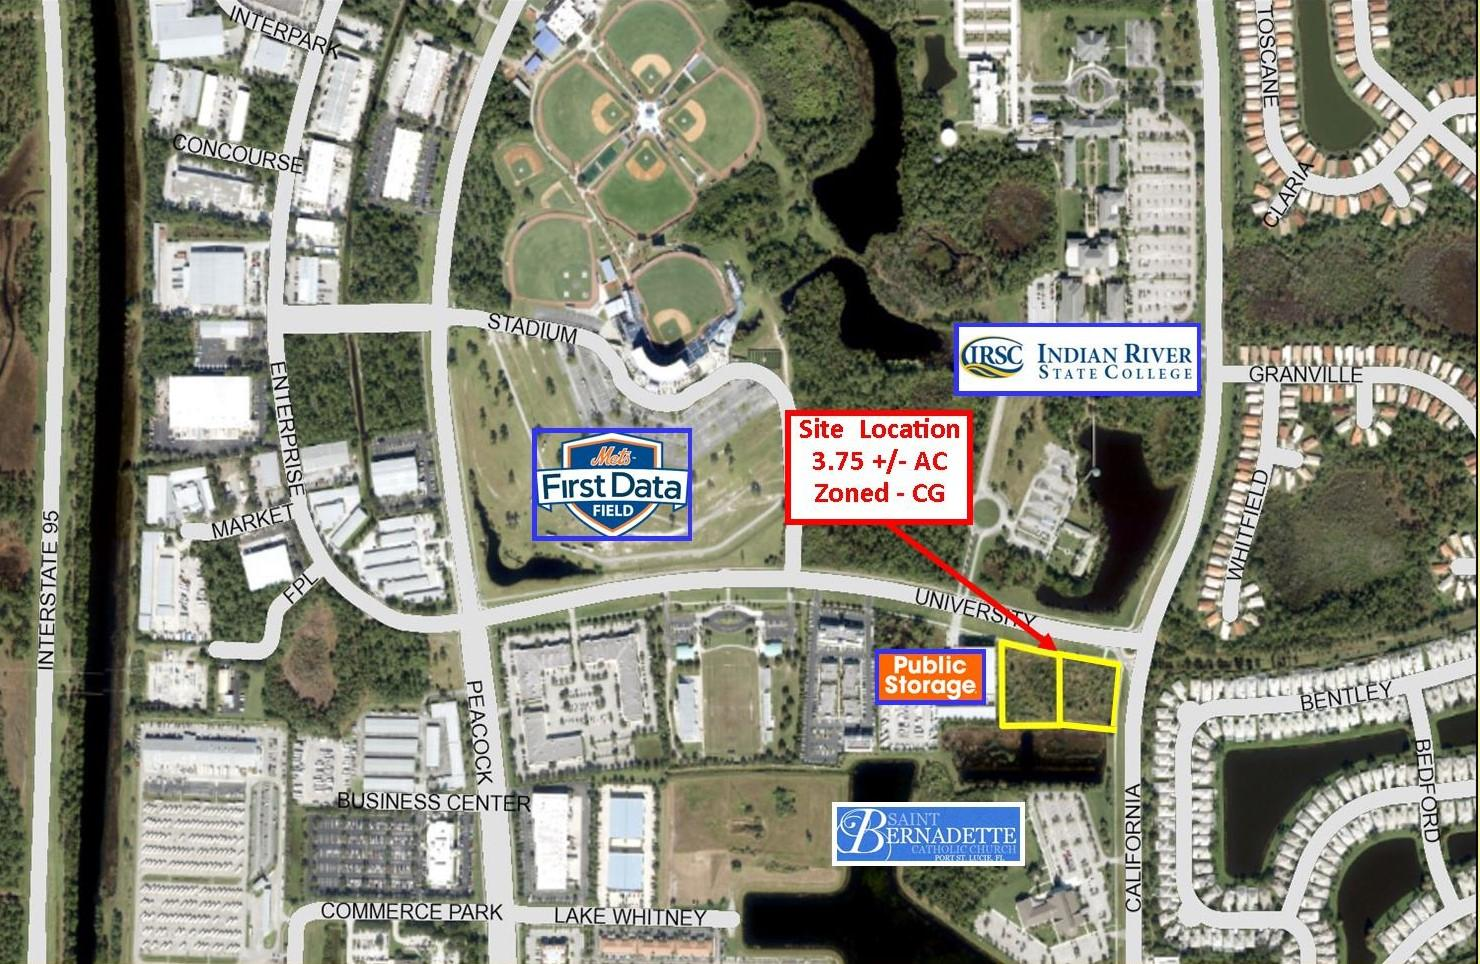 Commercial land For Sale - Price $1,350,000 - RX-10524748